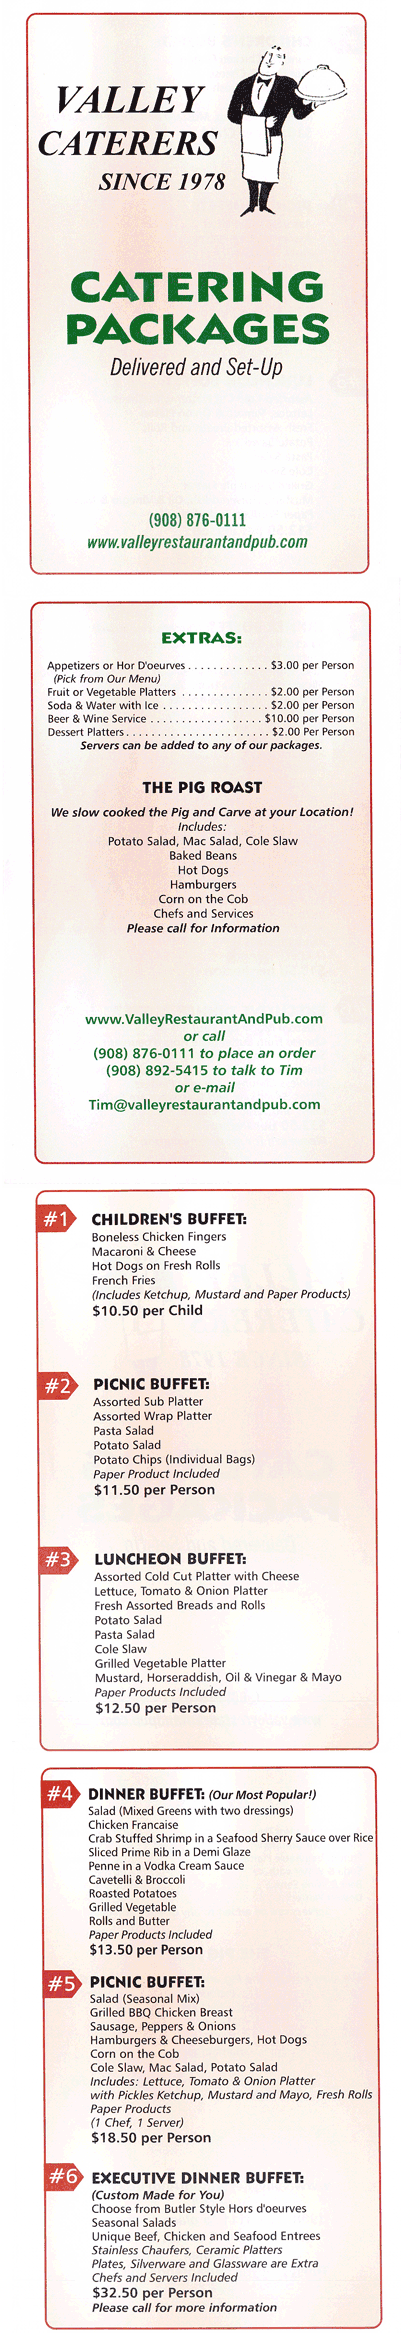 valley-caterers-4-13